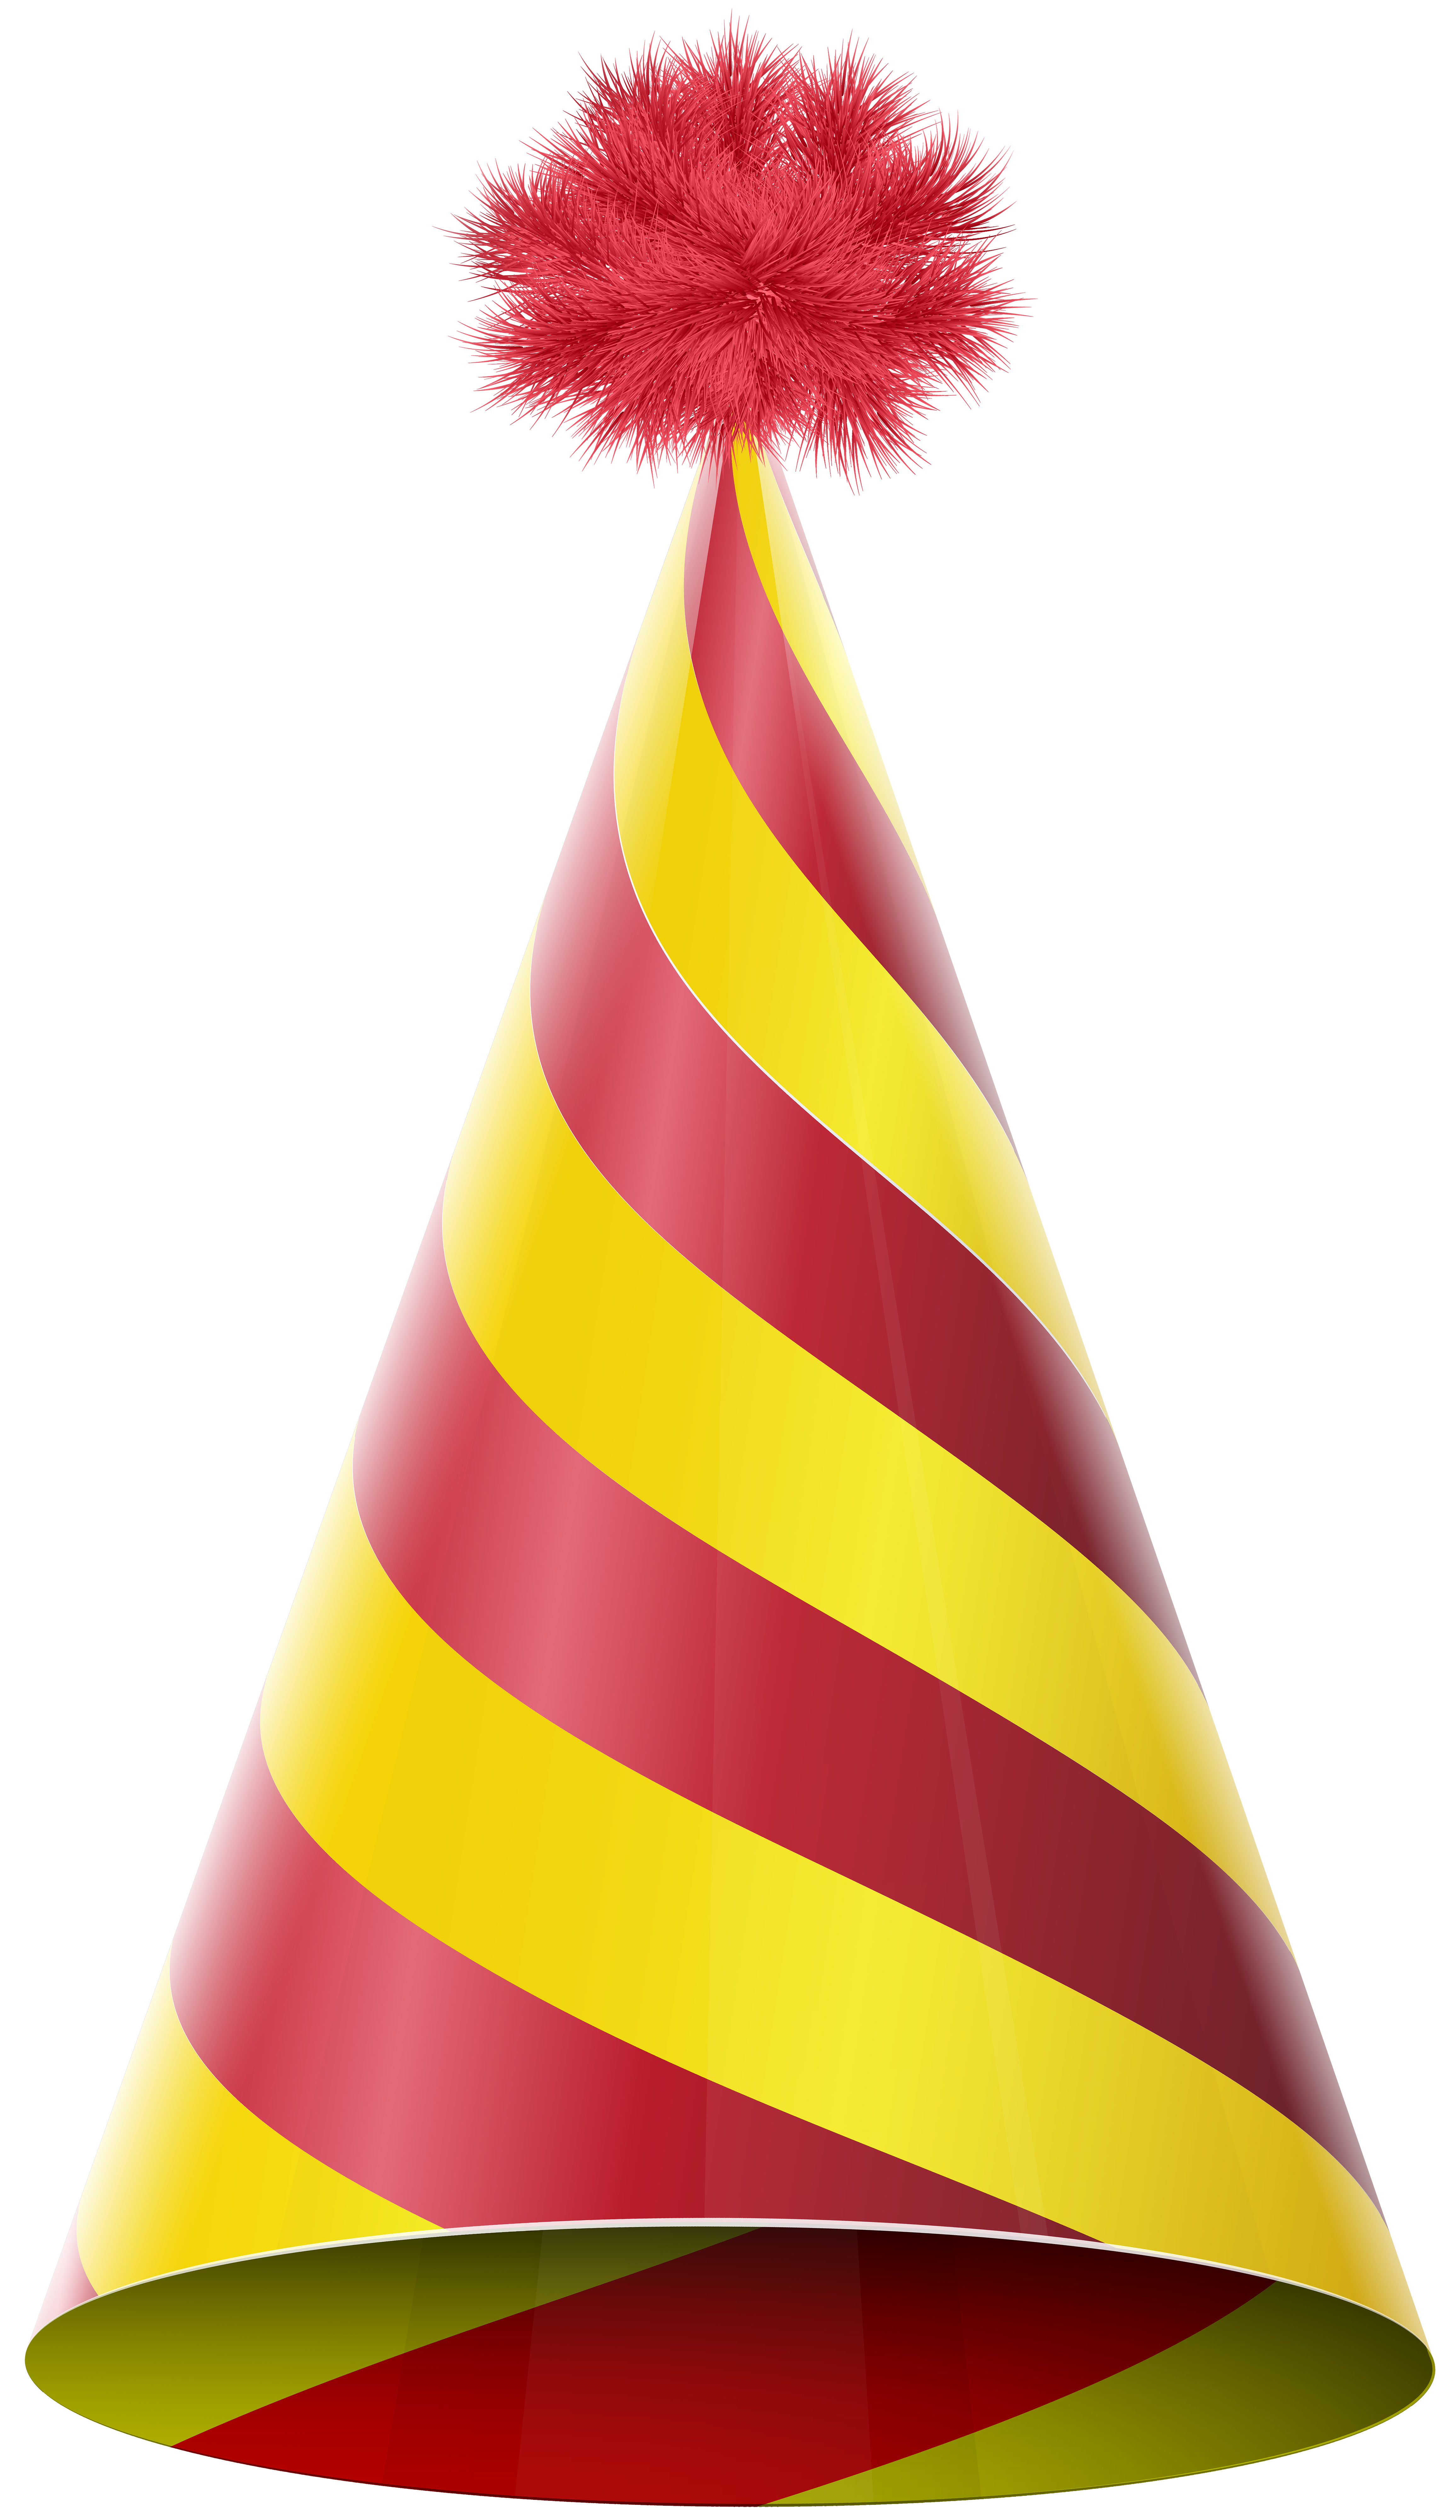 Yellow party hat clipart banner free Party Hat Red Yellow Transparent PNG Clip Art Image ... banner free